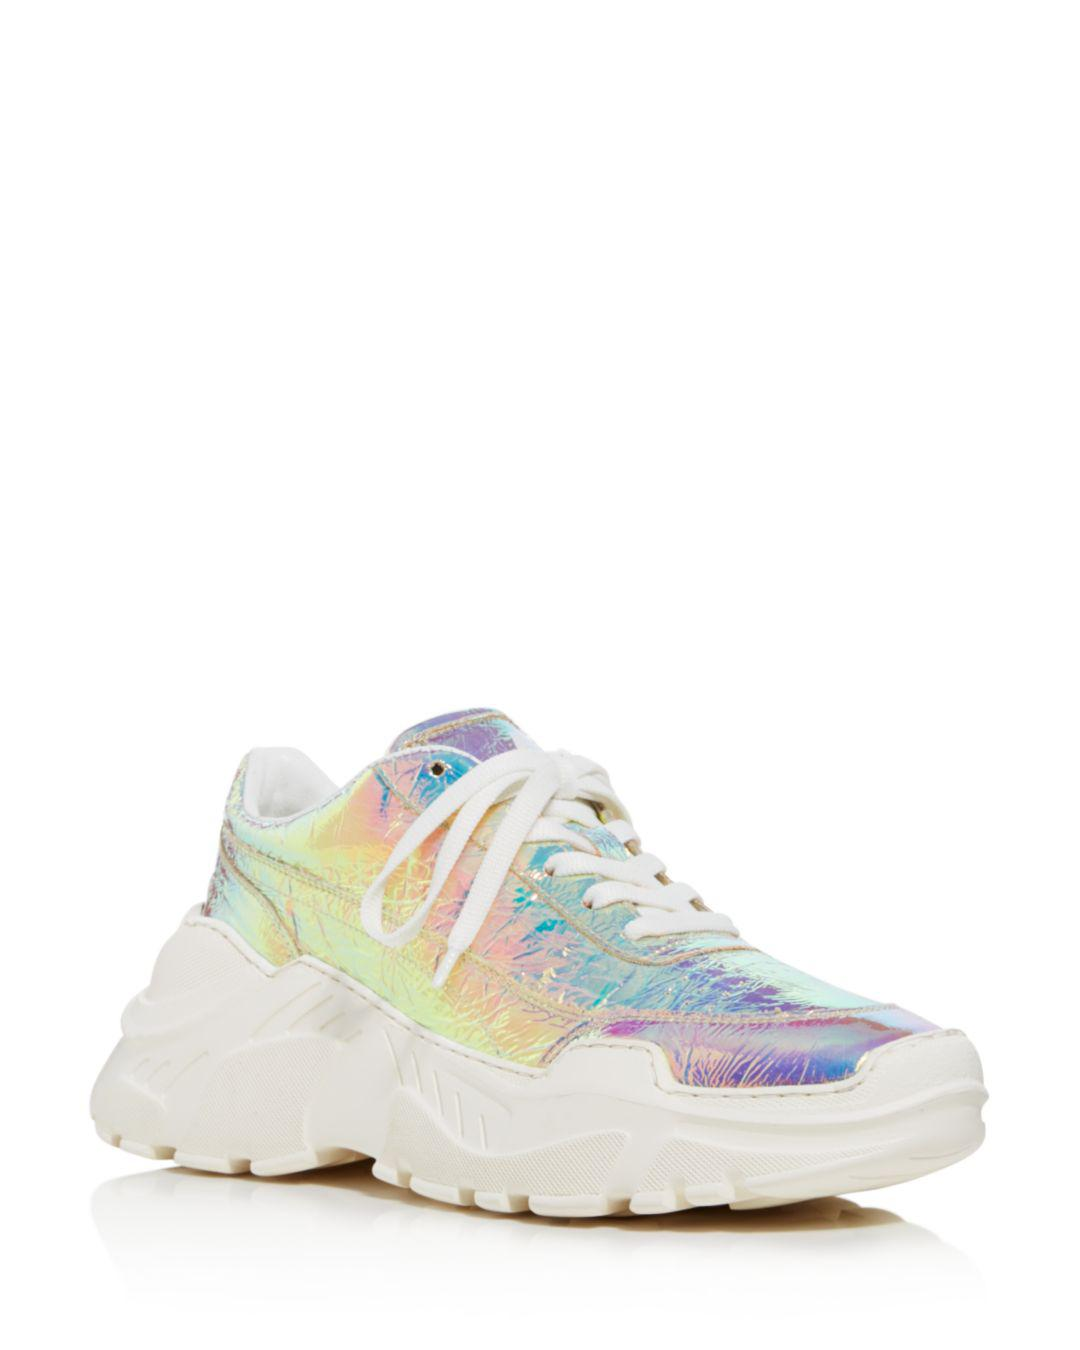 24813def7366 Lyst - Joshua Sanders Women s Leather   Holographic Foil Lace Up ...